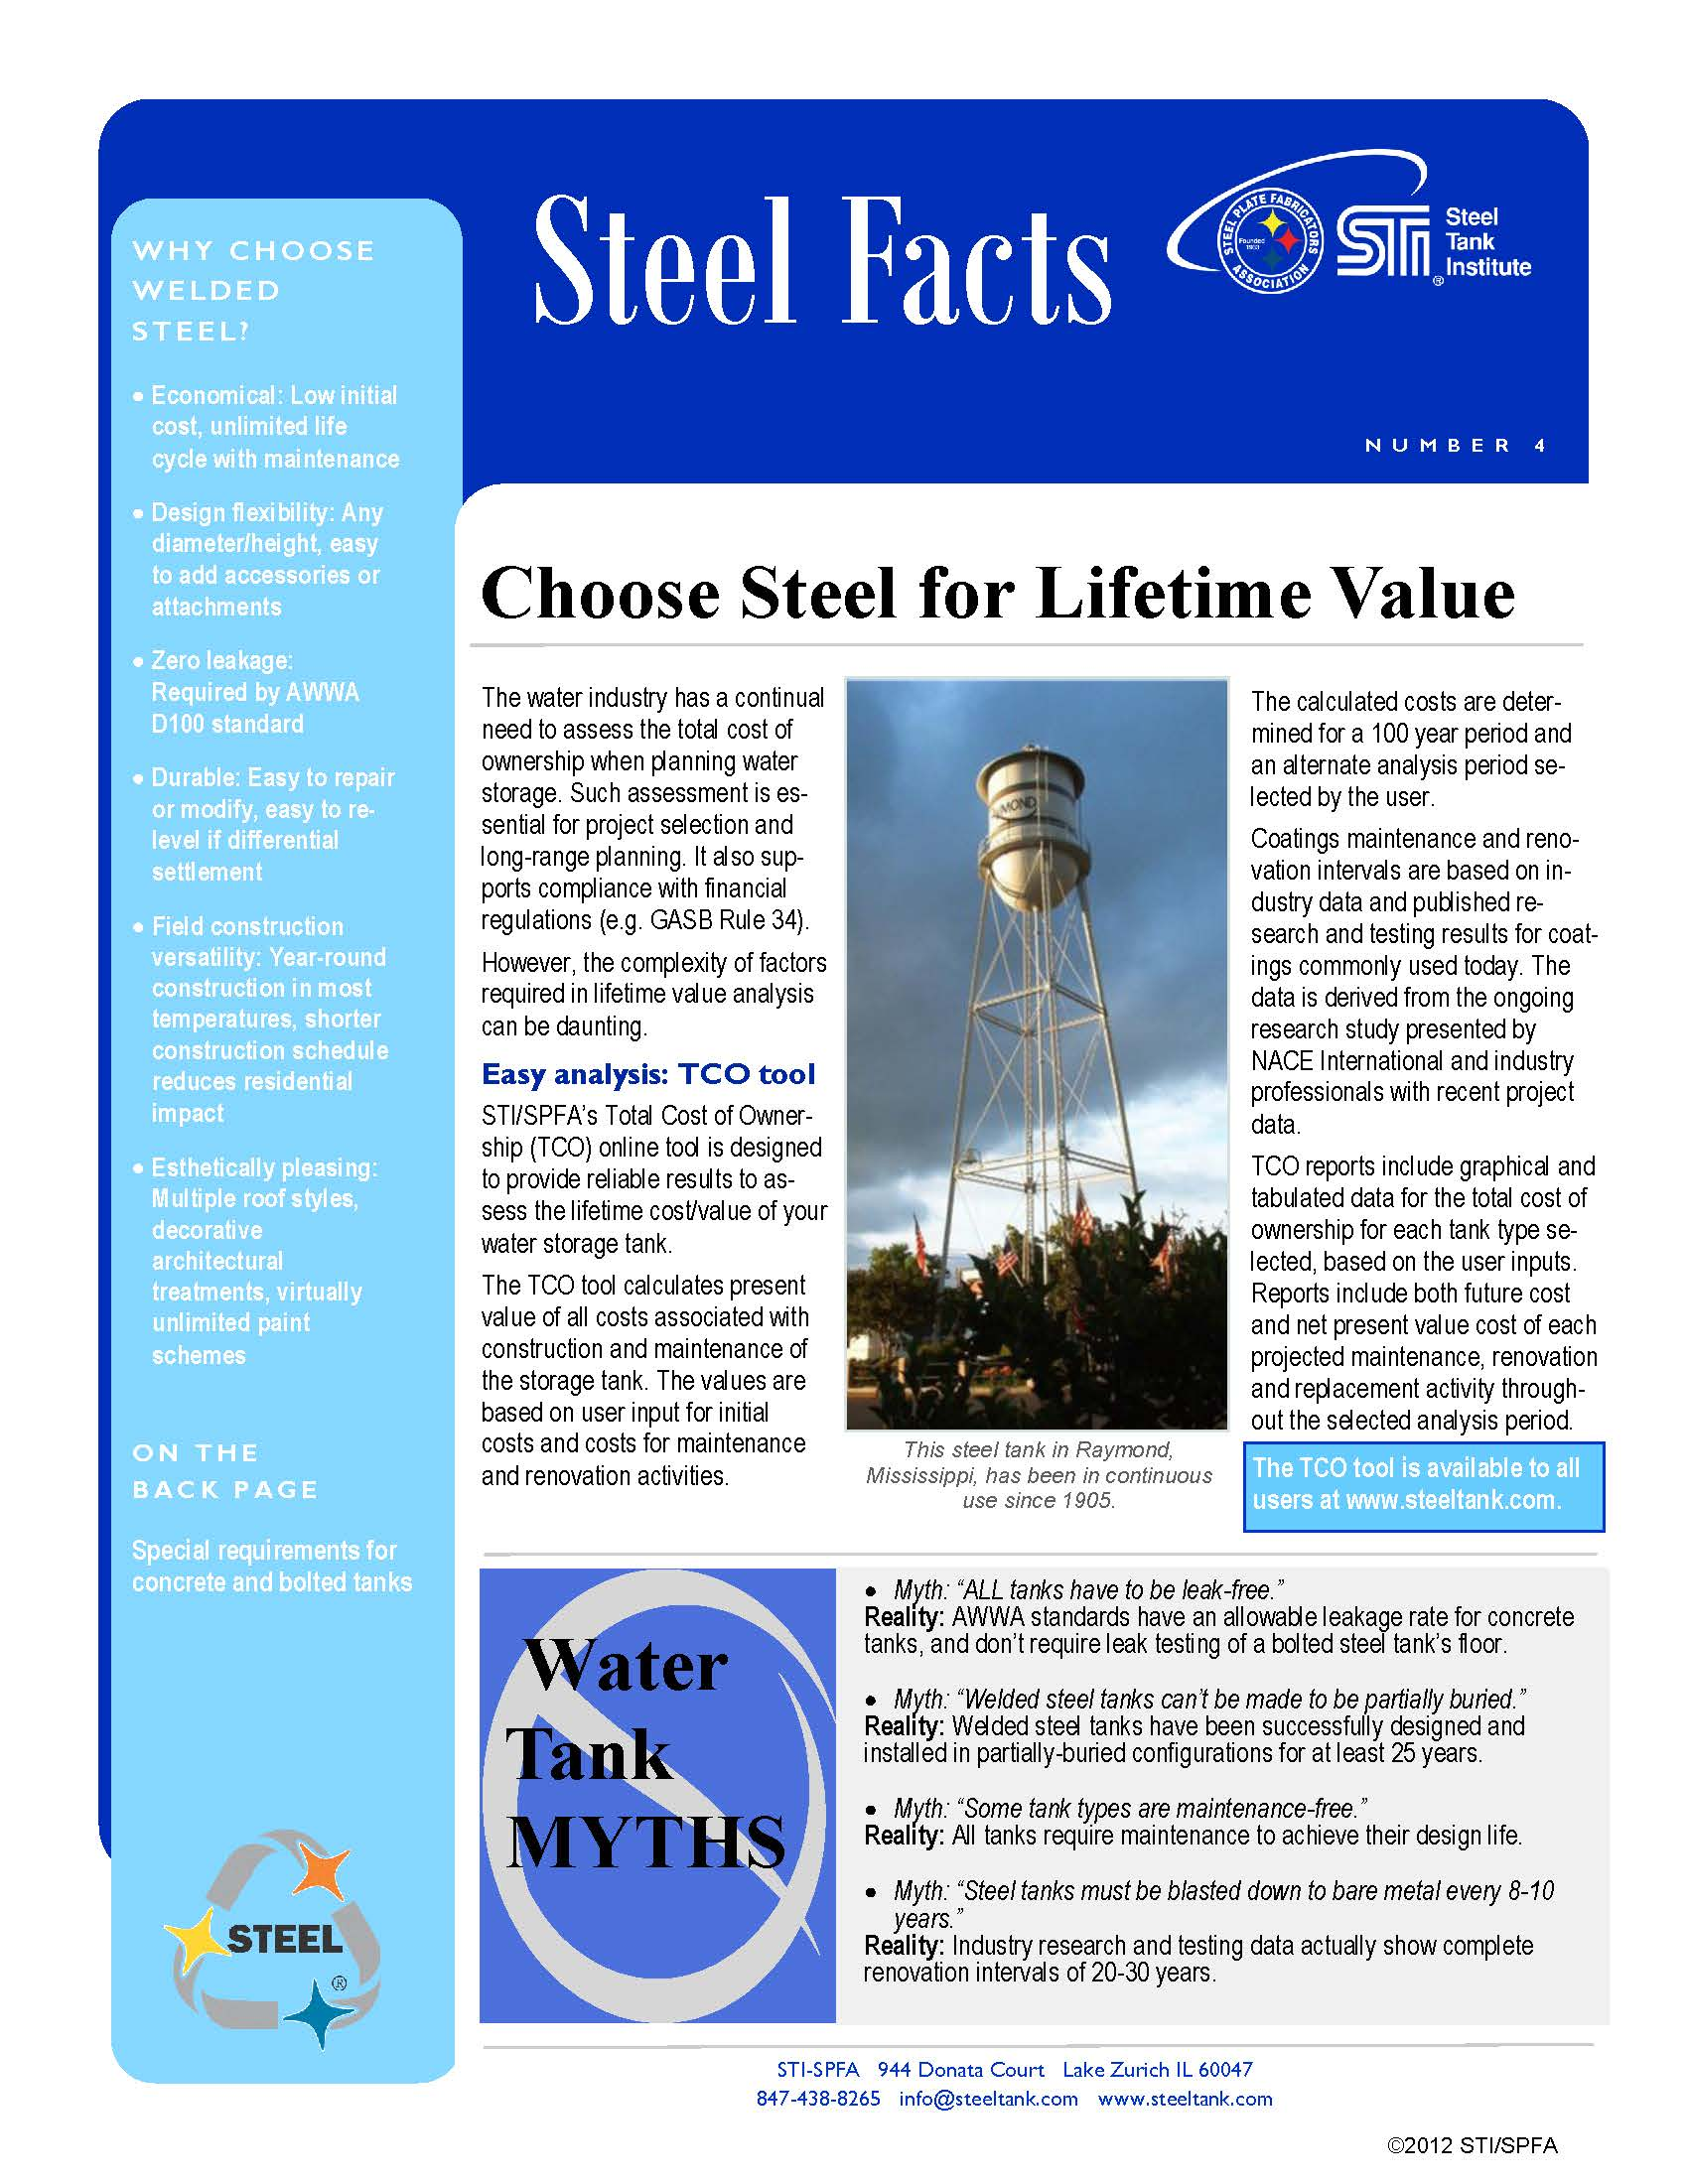 Steel_Facts_No._4-Choose_Steel_for_Lifetime_Value-FE_WITH_STI-SPFA_ID_Page_1.jpg